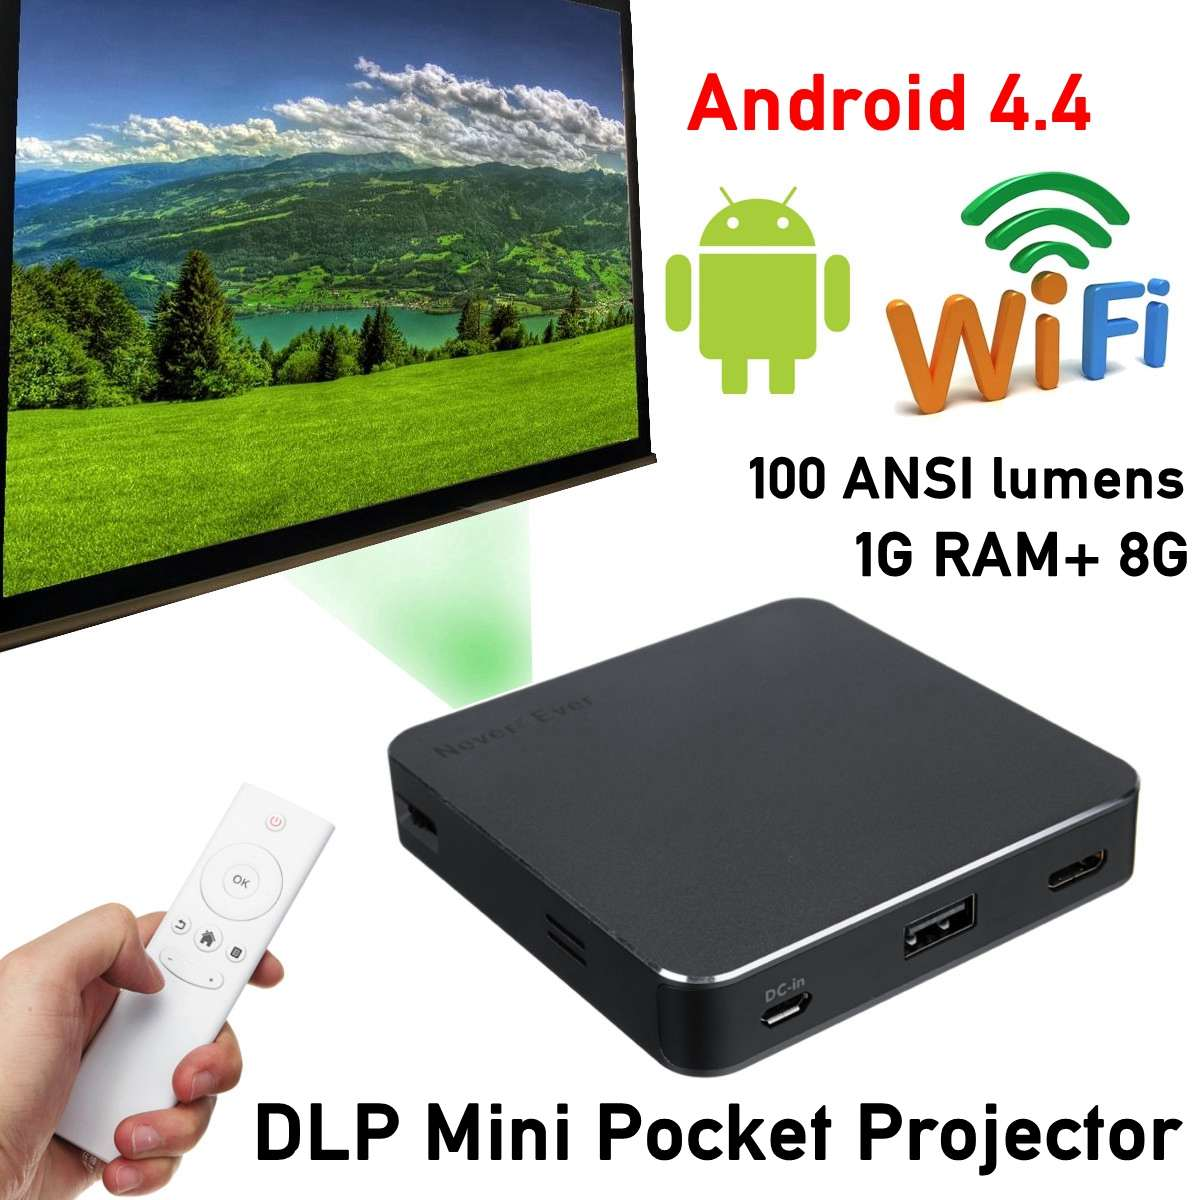 4 K/8 Gb Hd Bluetooth Home Projector Home Theatre-systeem Kantoor Wifi Dlp Mini P Ocket Projector Android 7.1/4.0